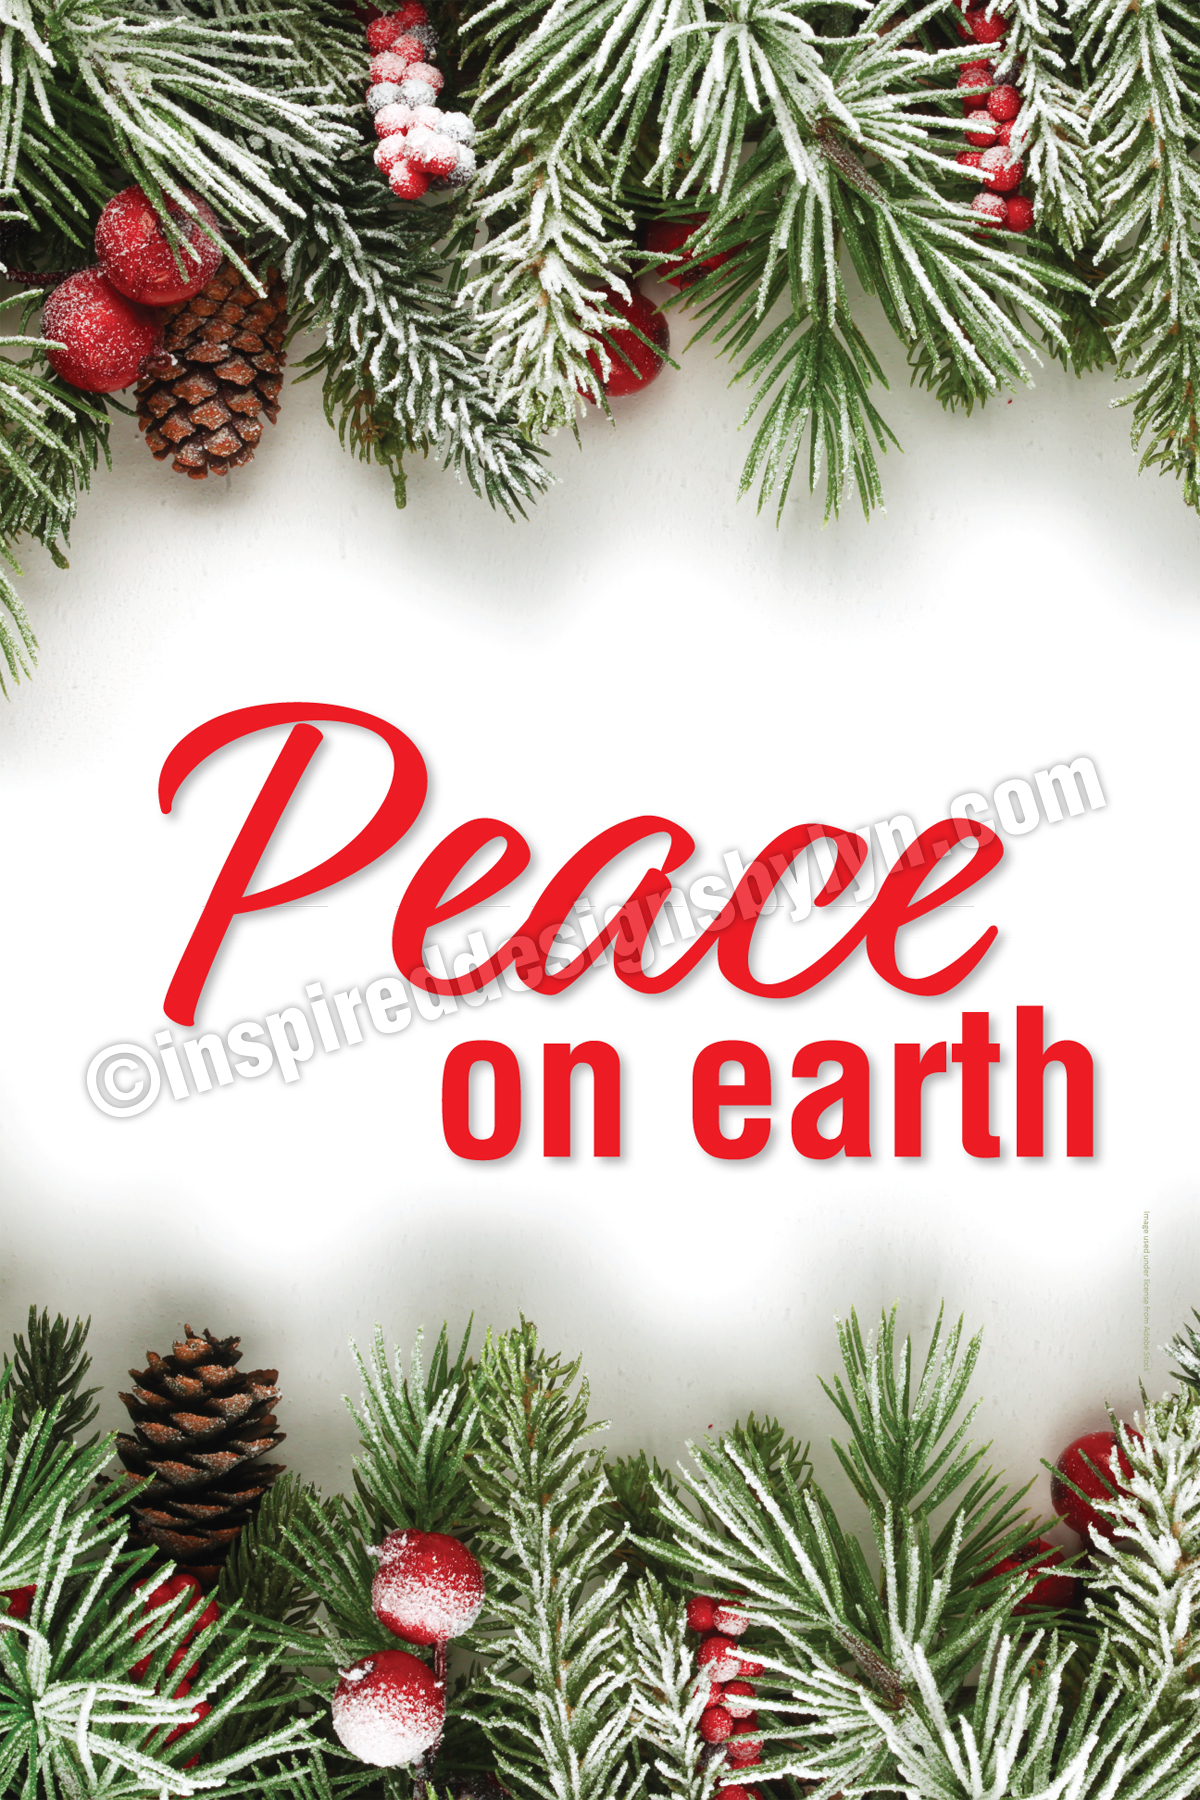 Peace on earth (V31s)